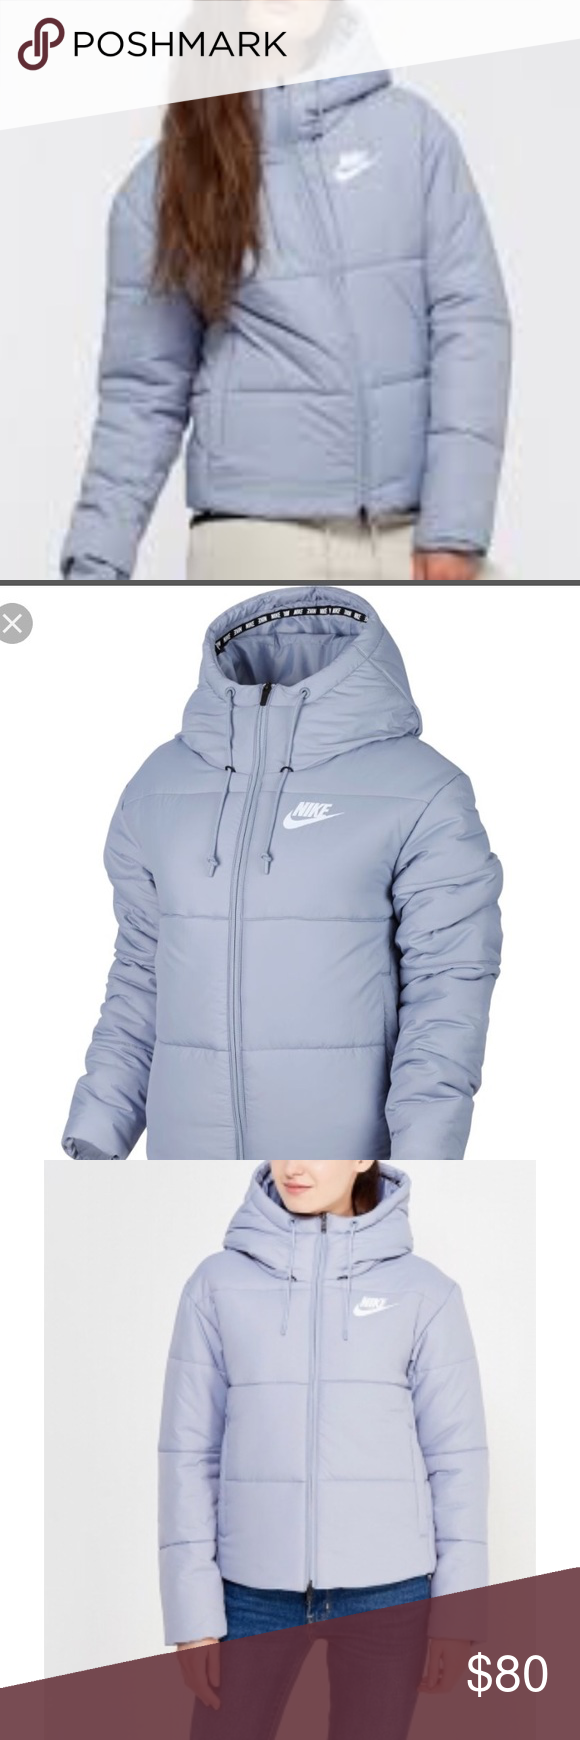 866691e2d6fa NIKE Women Winters Jacket THERMORE light blue L New Women Winter ❄ Jacket  NIKE THERMORE Size L Nike Jackets   Coats Puffers